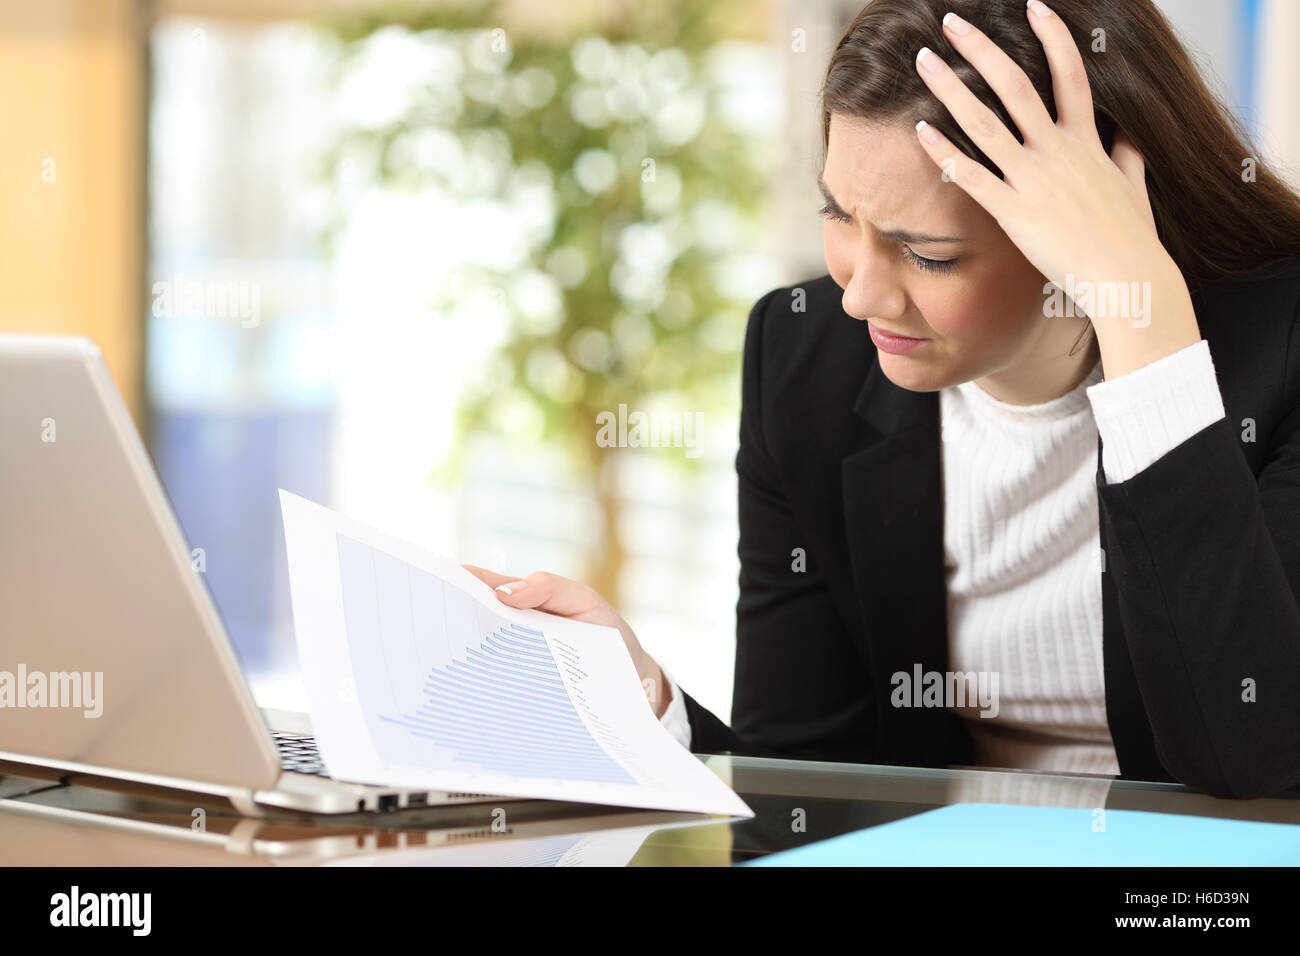 Worried businesswoman in bankruptcy watching decreased sales statistics in a paper document at office - Stock Image